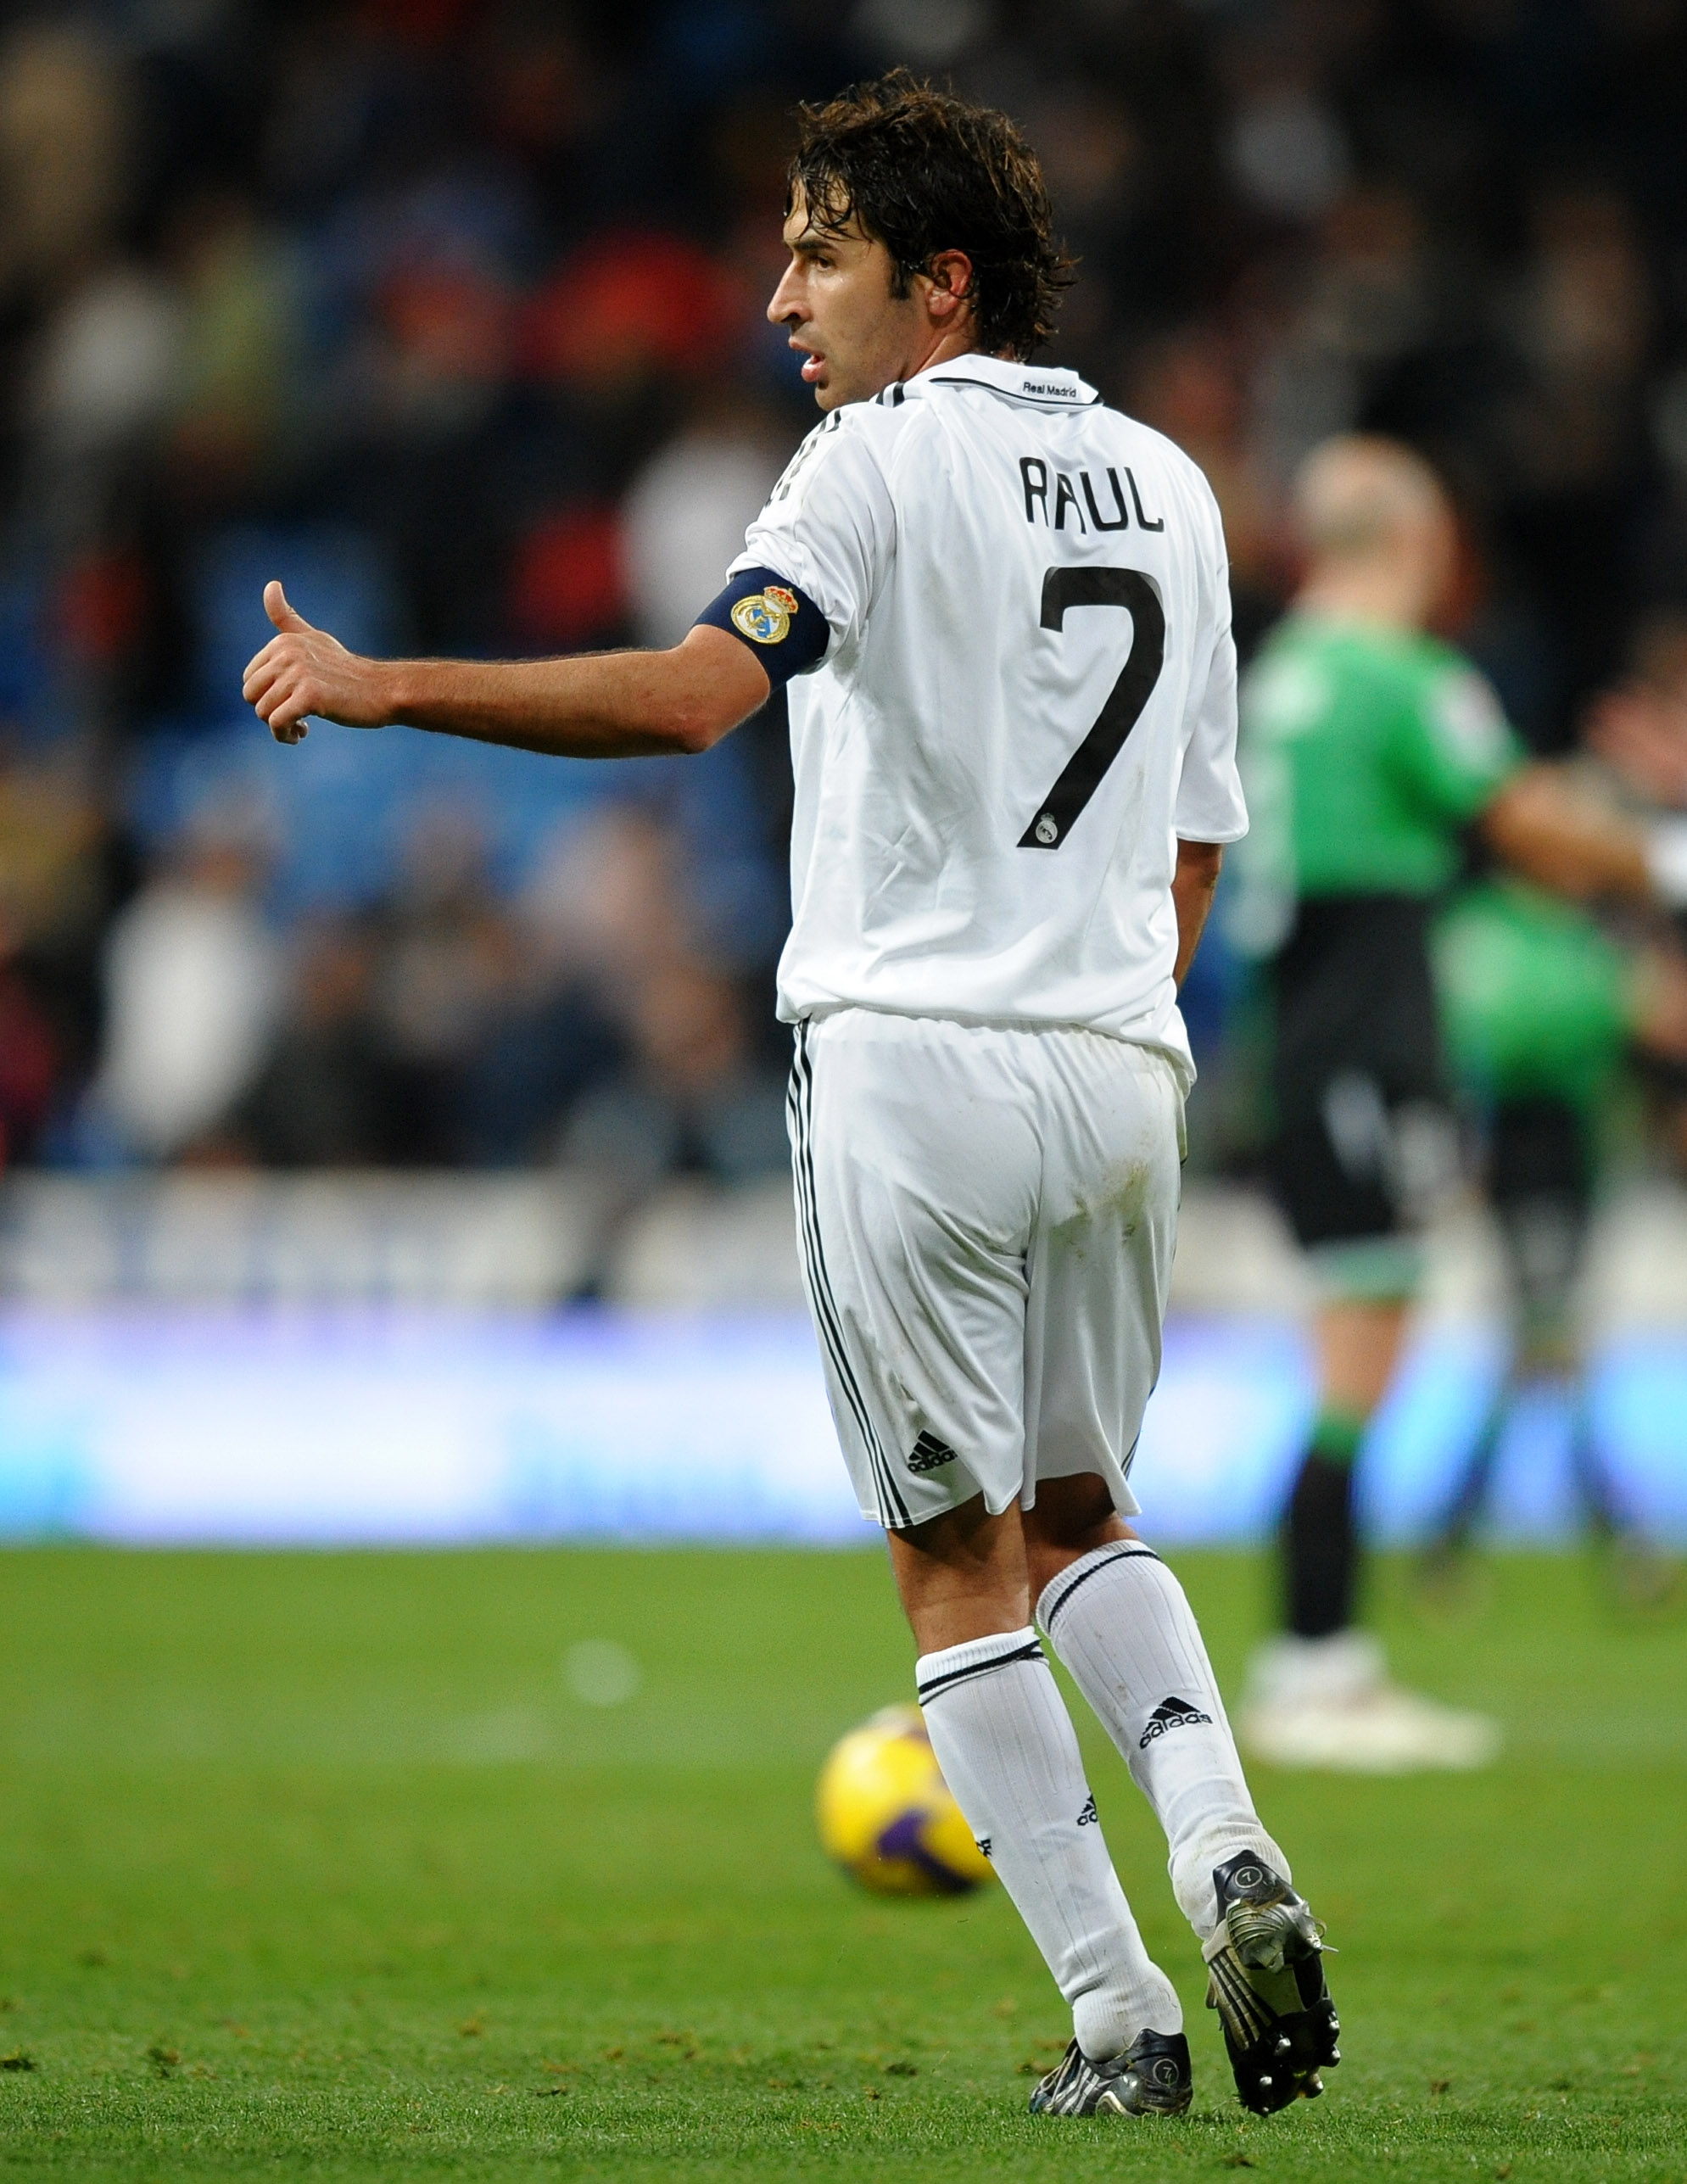 Raul Gonzalez Blanco photo 18 of 68 pics, wallpaper ...